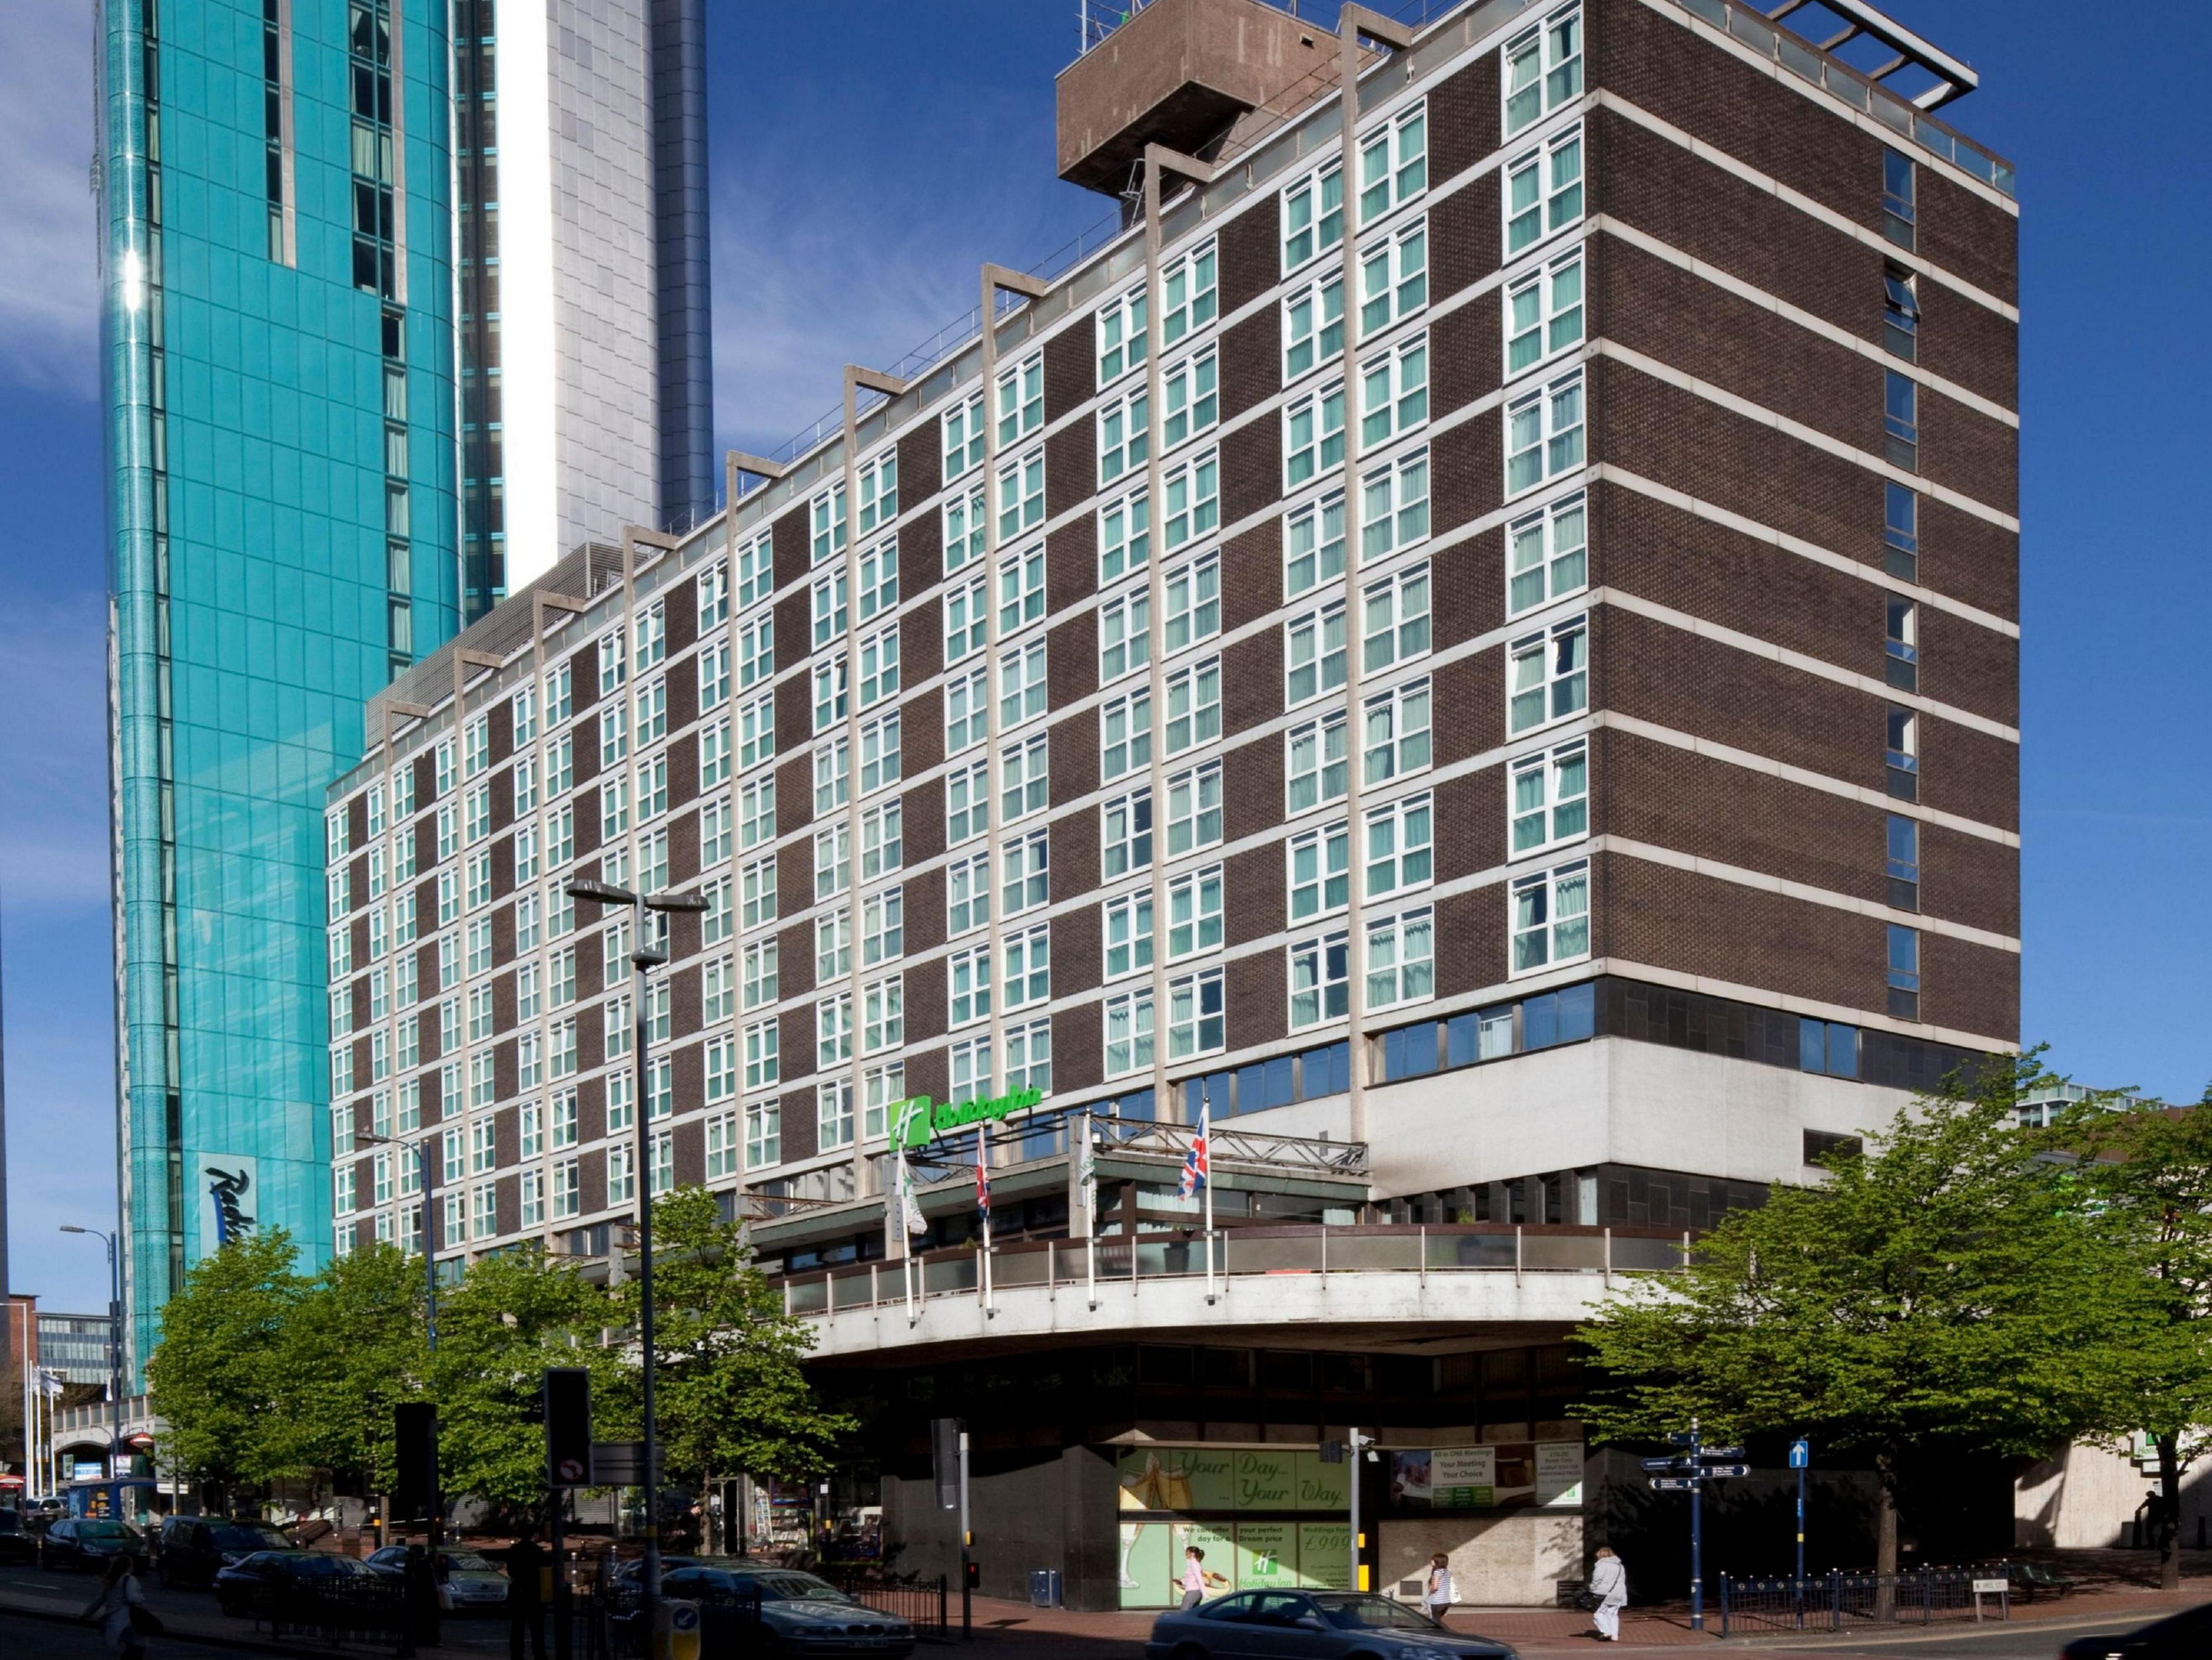 Welcome to the Holiday Inn Birmingham City Centre